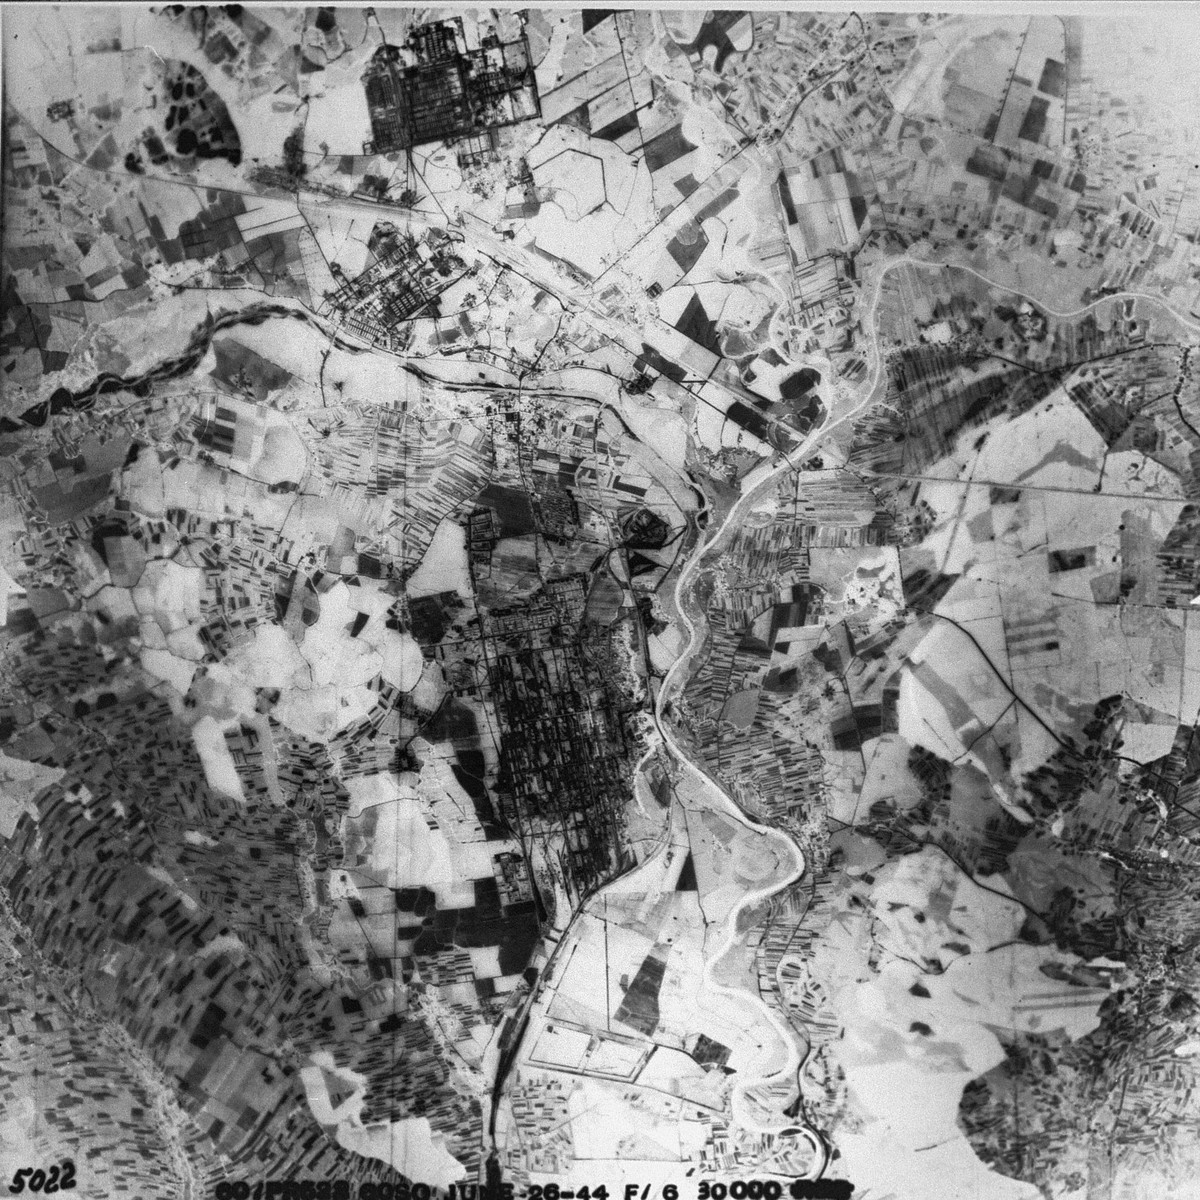 An reconnaissance aerial photograph of Auschwitz including Birkenau and Auschwitz III (Monowitz) next to the I.G. Farben synthetic oil and rubber manufacturing plant. [oversized photograph]